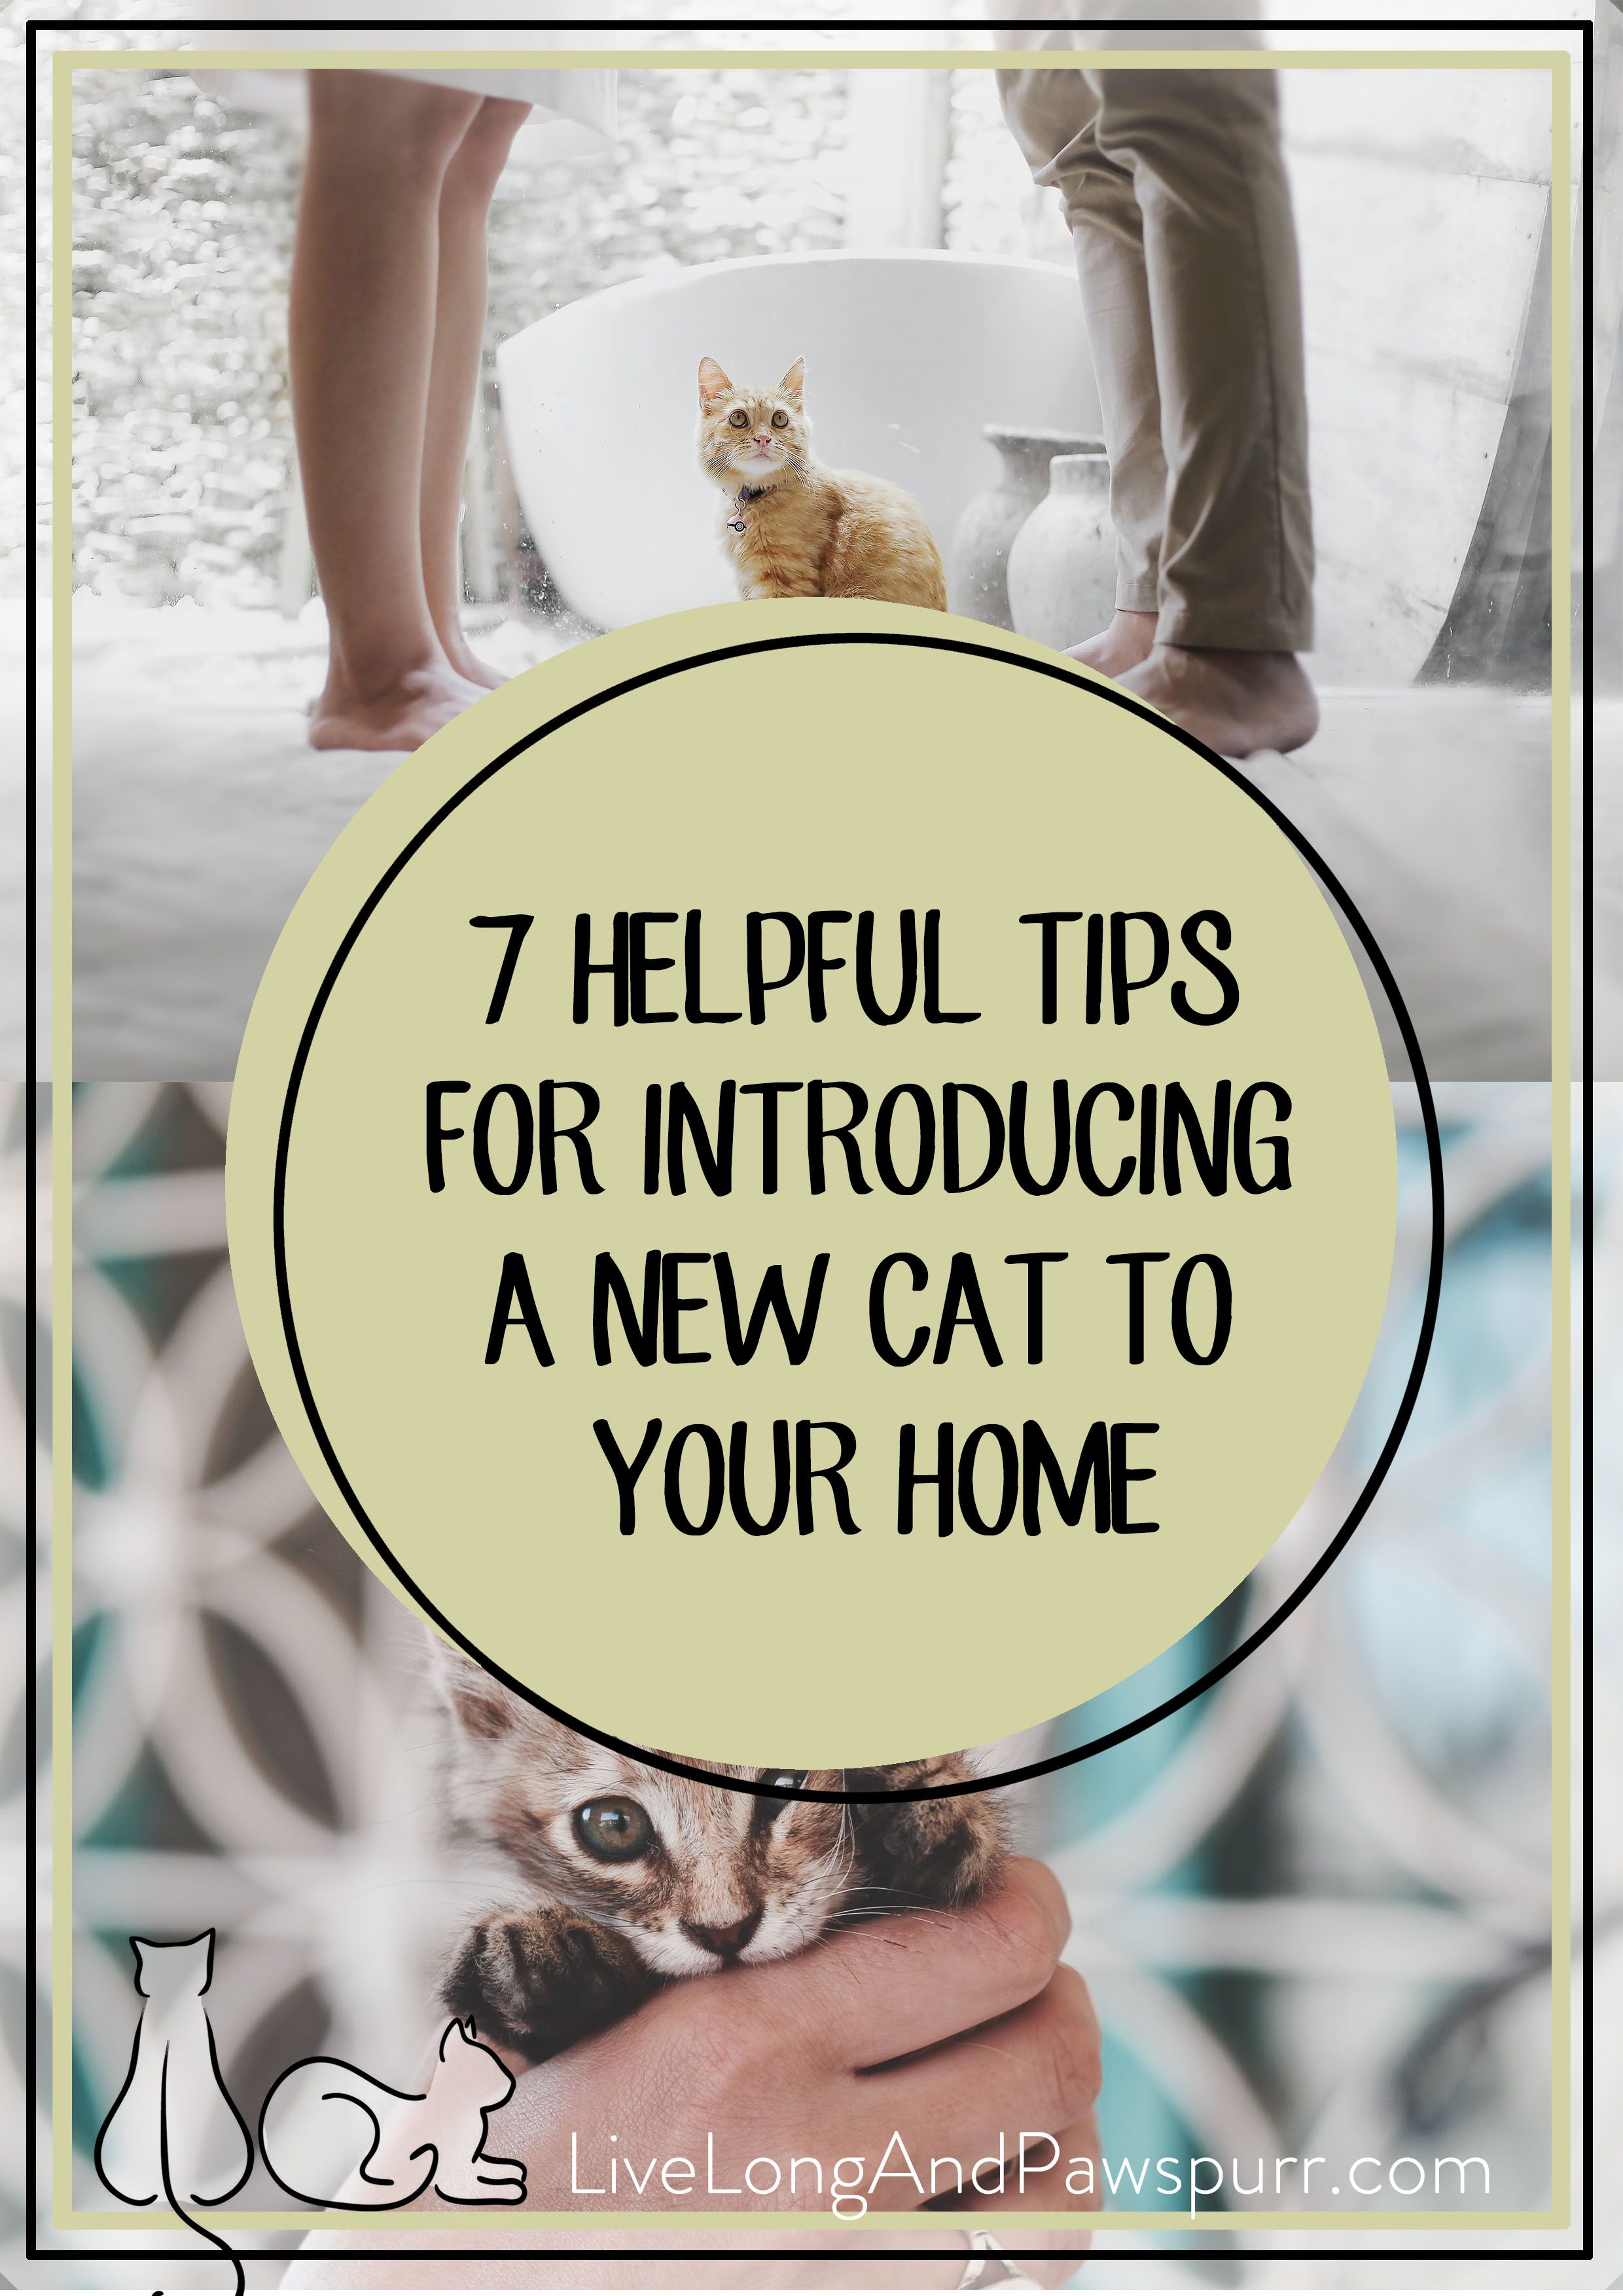 7 Helpful Tips For Introducing A New Kitten To Your Home Live Long And Pawspurr Introducing A New Cat Cat Training Sick Cat